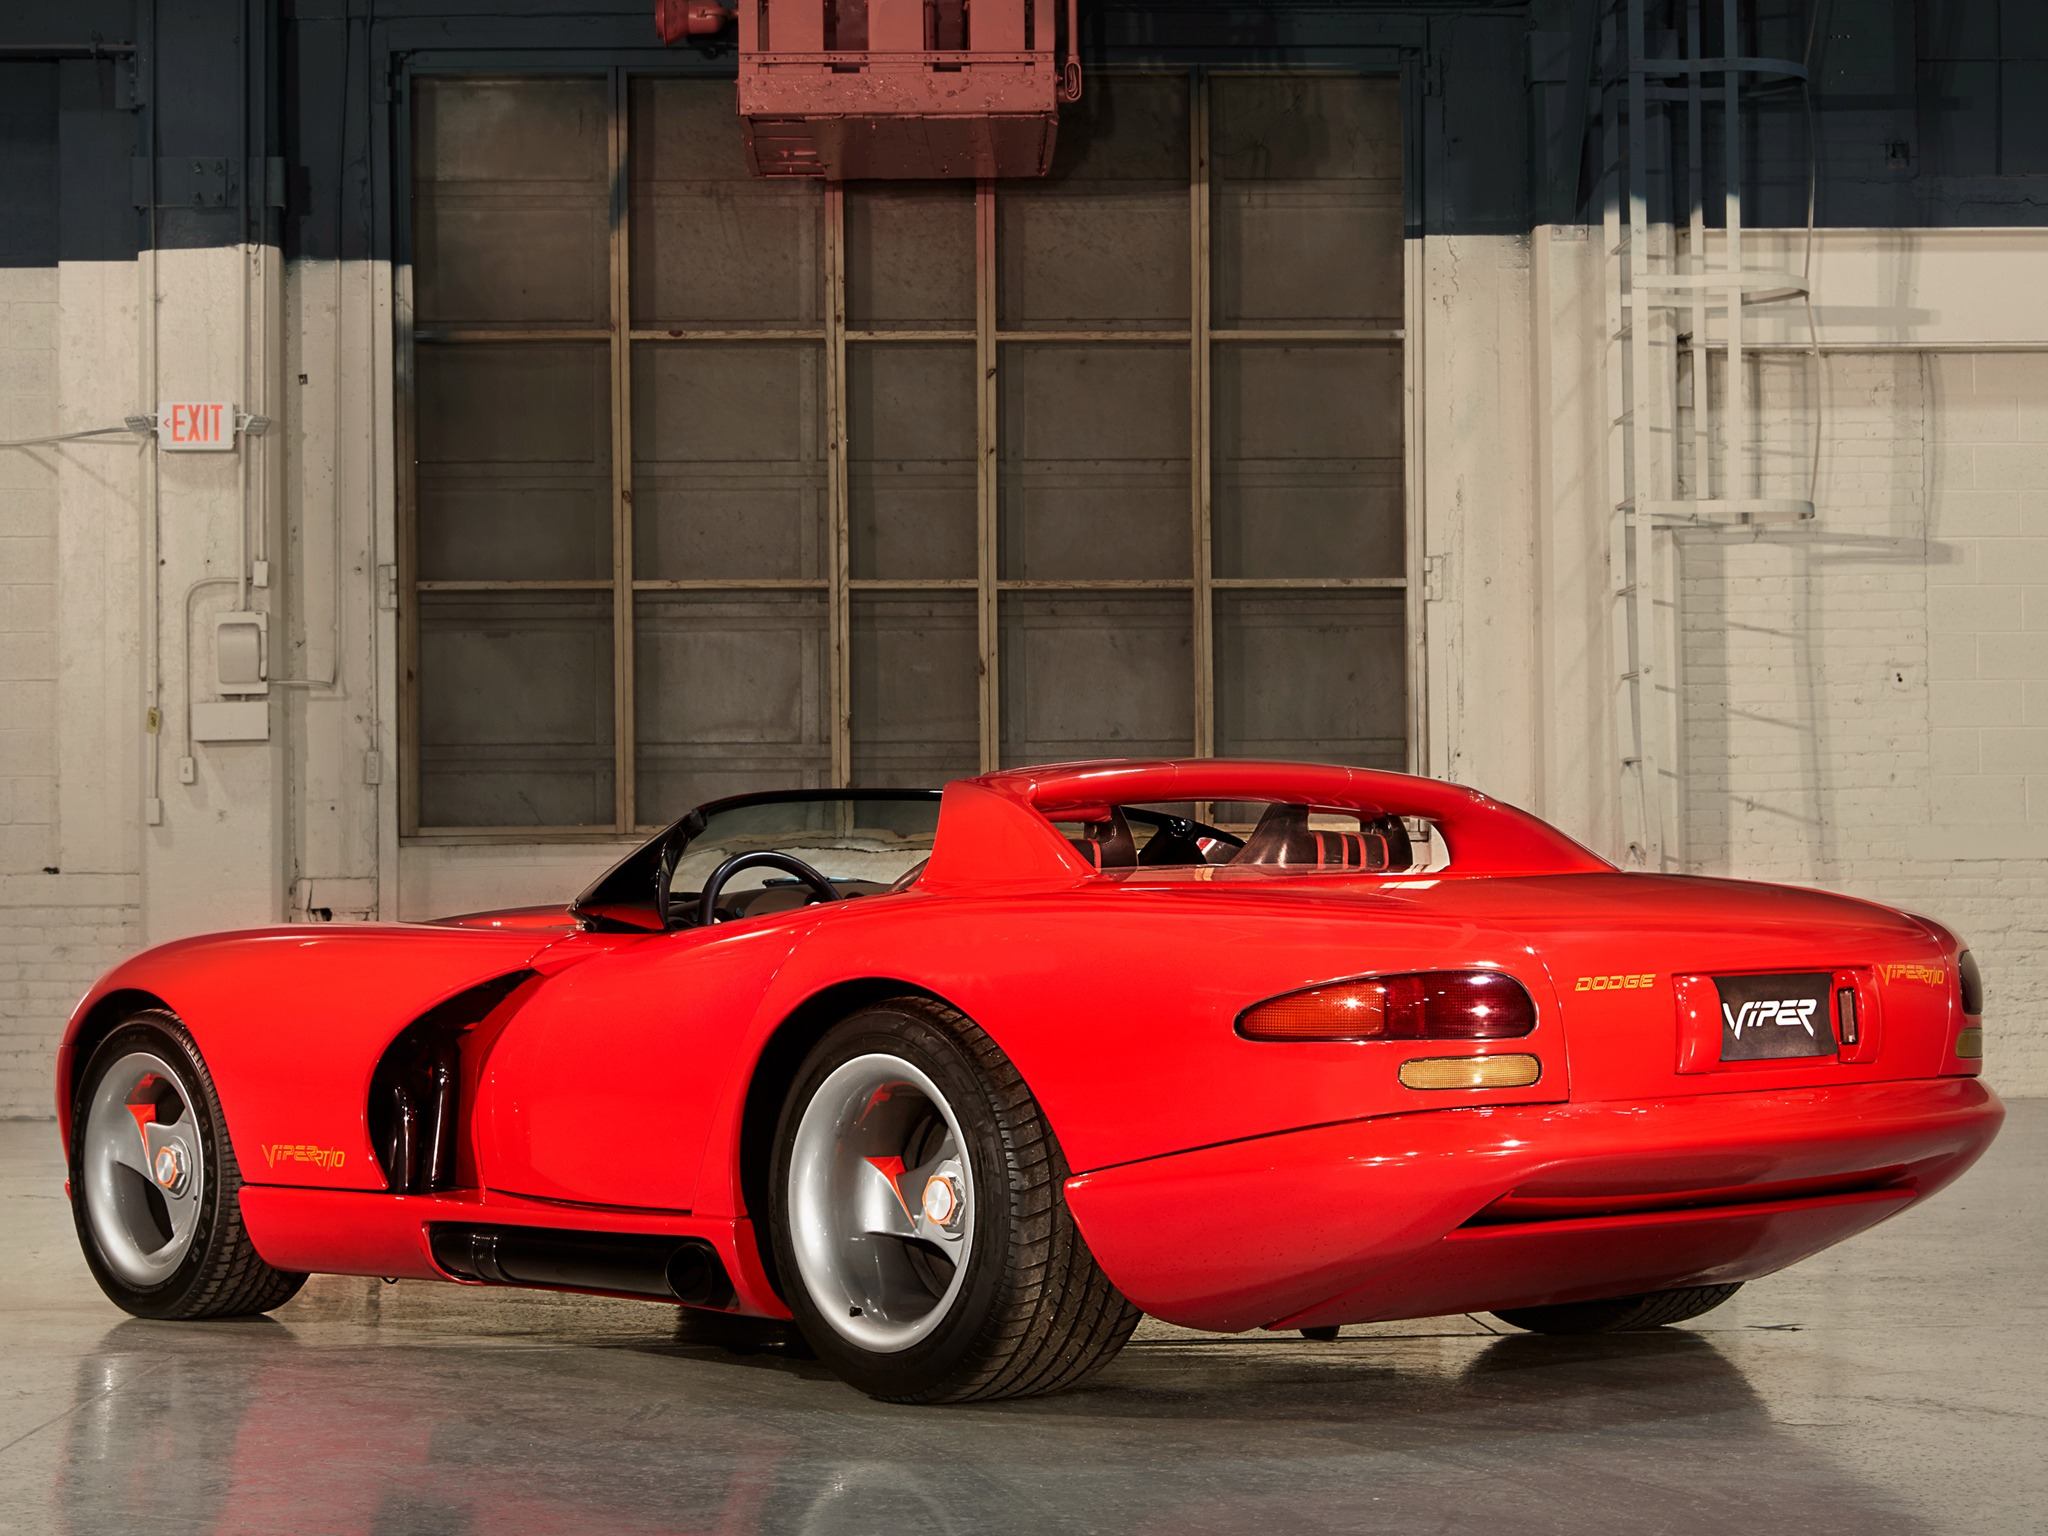 Rt 22 Toyota >> Dodge Viper RT/10 Concept (1989) - Old Concept Cars